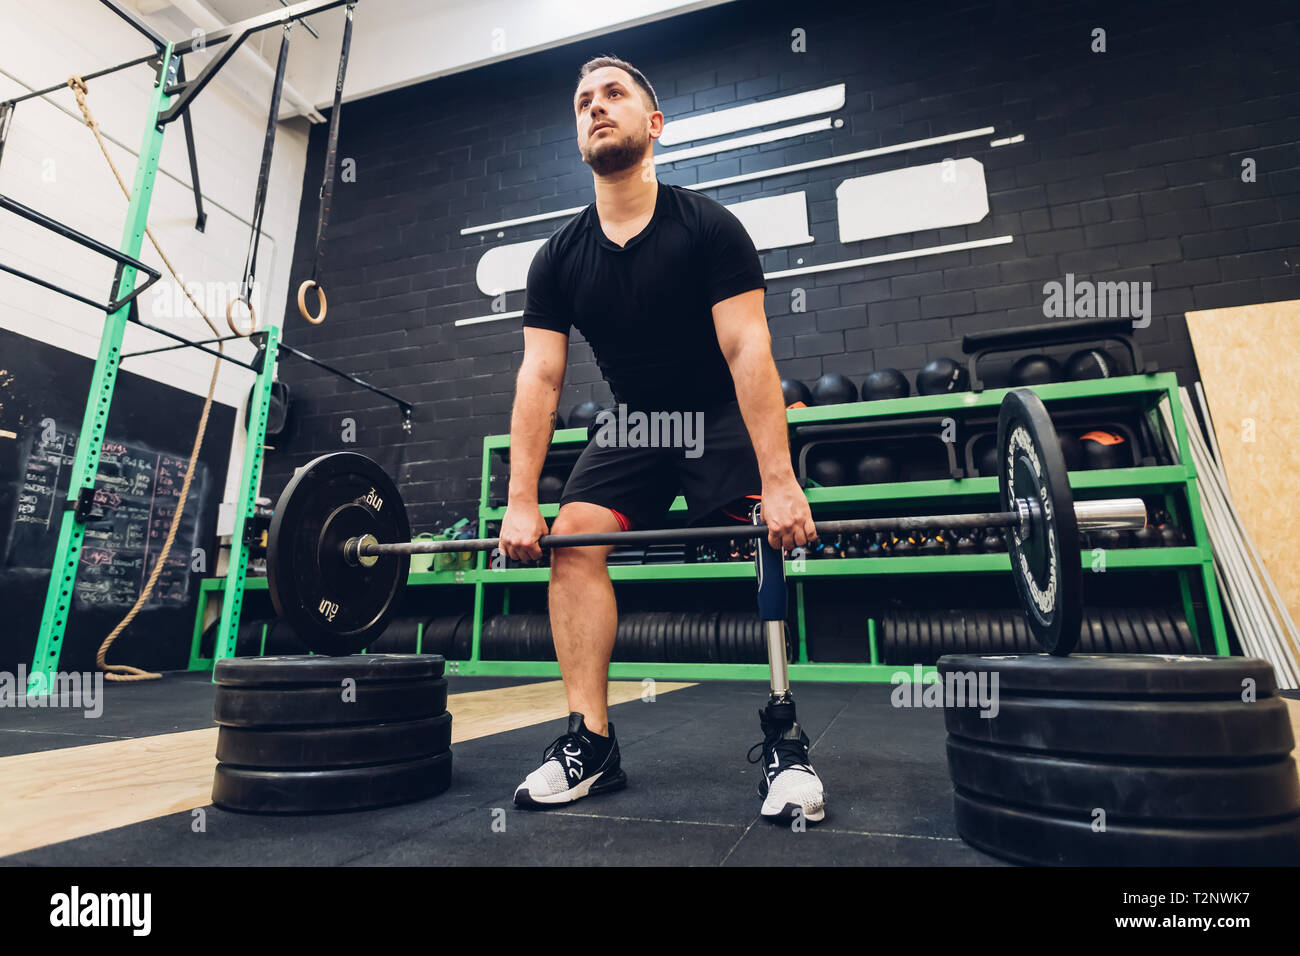 Man with prosthetic leg weight training in gym Stock Photo